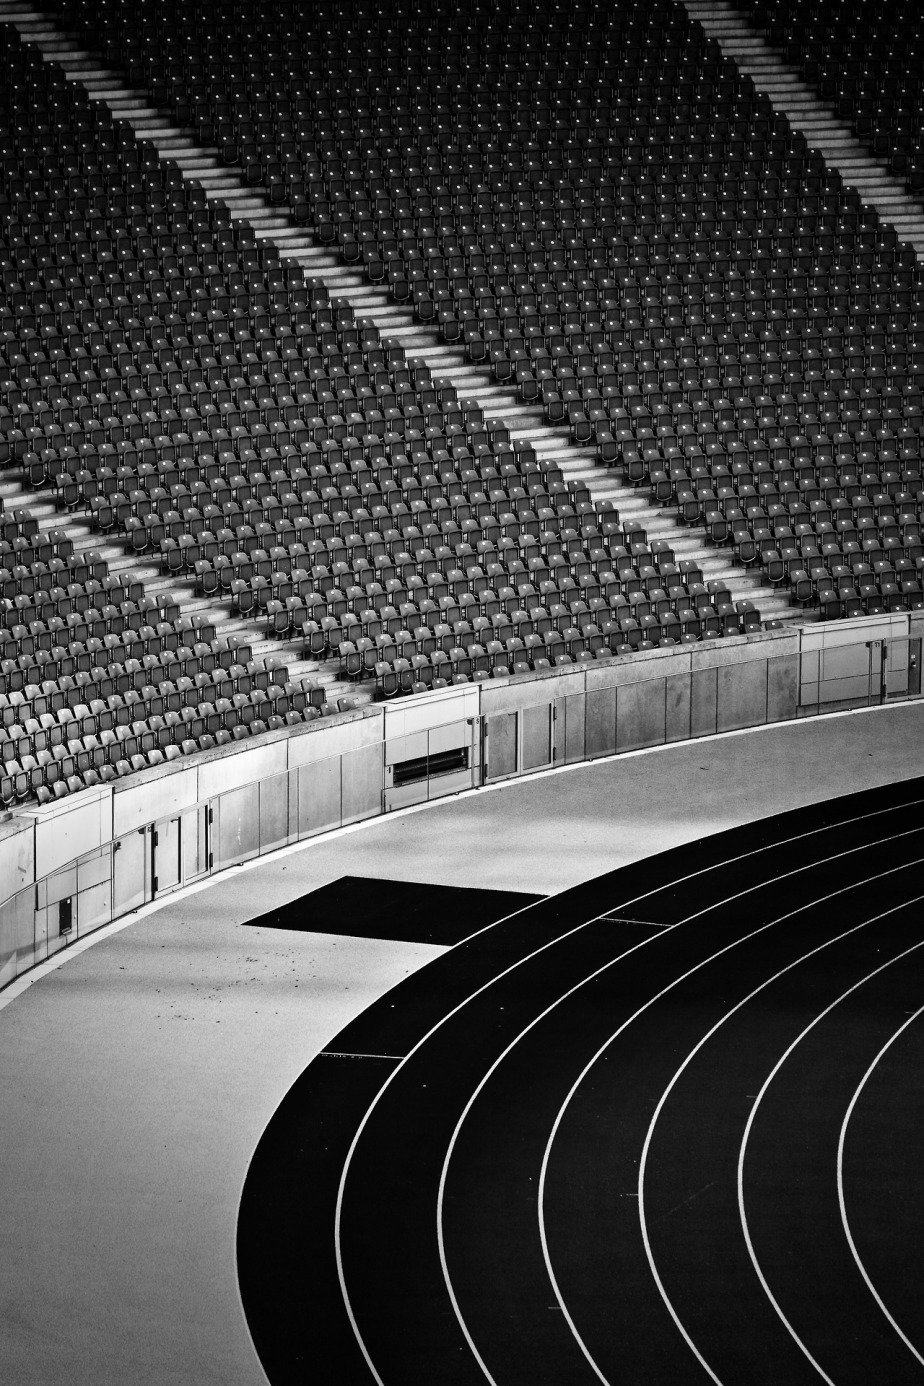 The Olympic Stadium in Berlin, Germany - beautifully photographed in black and white by German photographer Andreas Levers